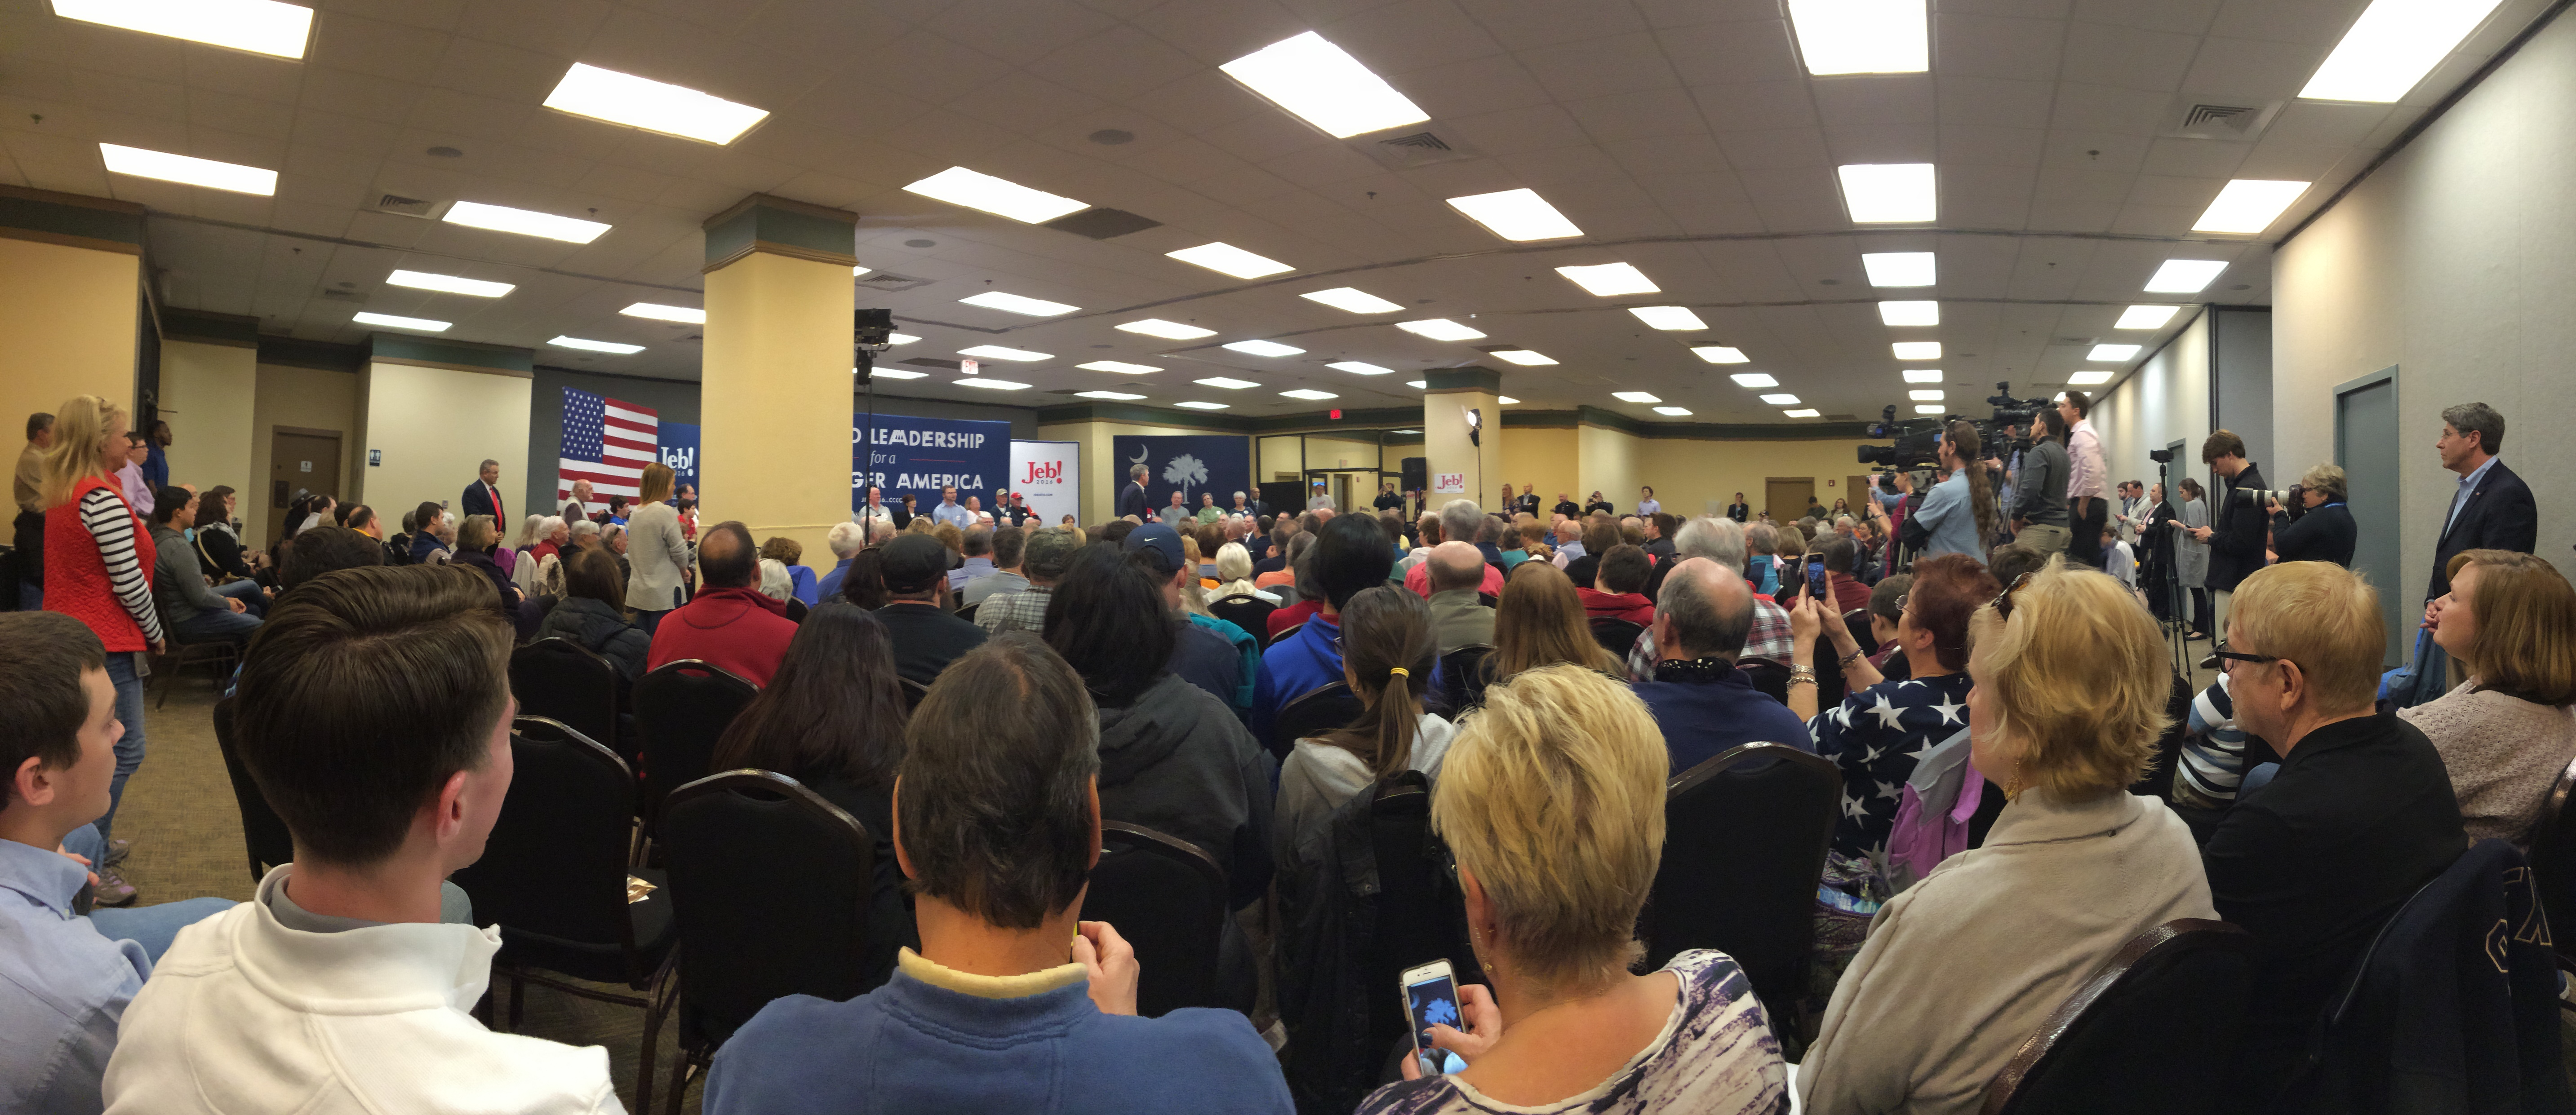 On Wednesday night, Sidney and I went to a town hall for Jeb Bush. I took this panorama a few minutes after Jeb took the stage.